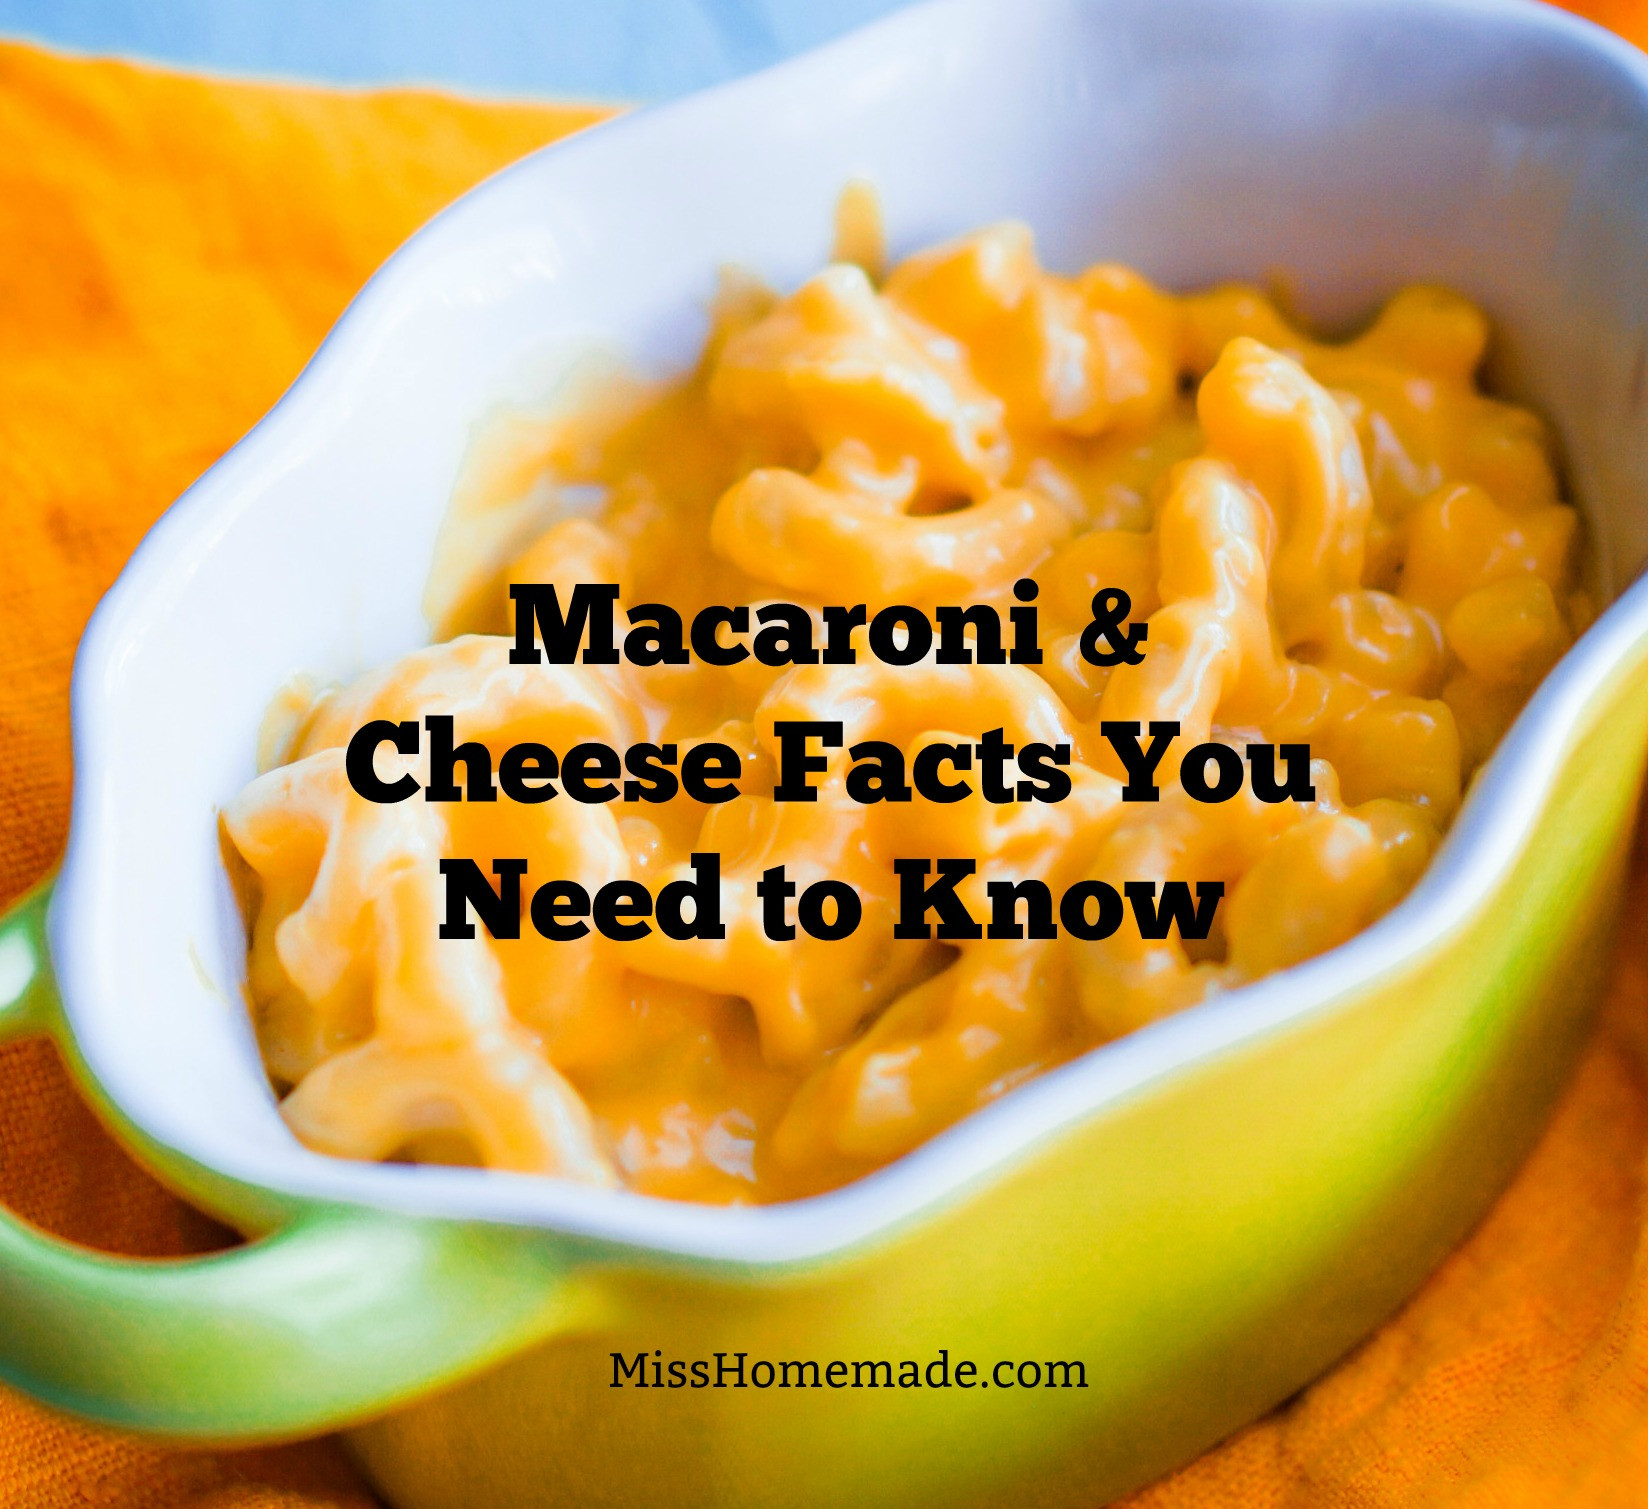 Macaroni and Cheese Facts You Need to Know - MissHomemade.com